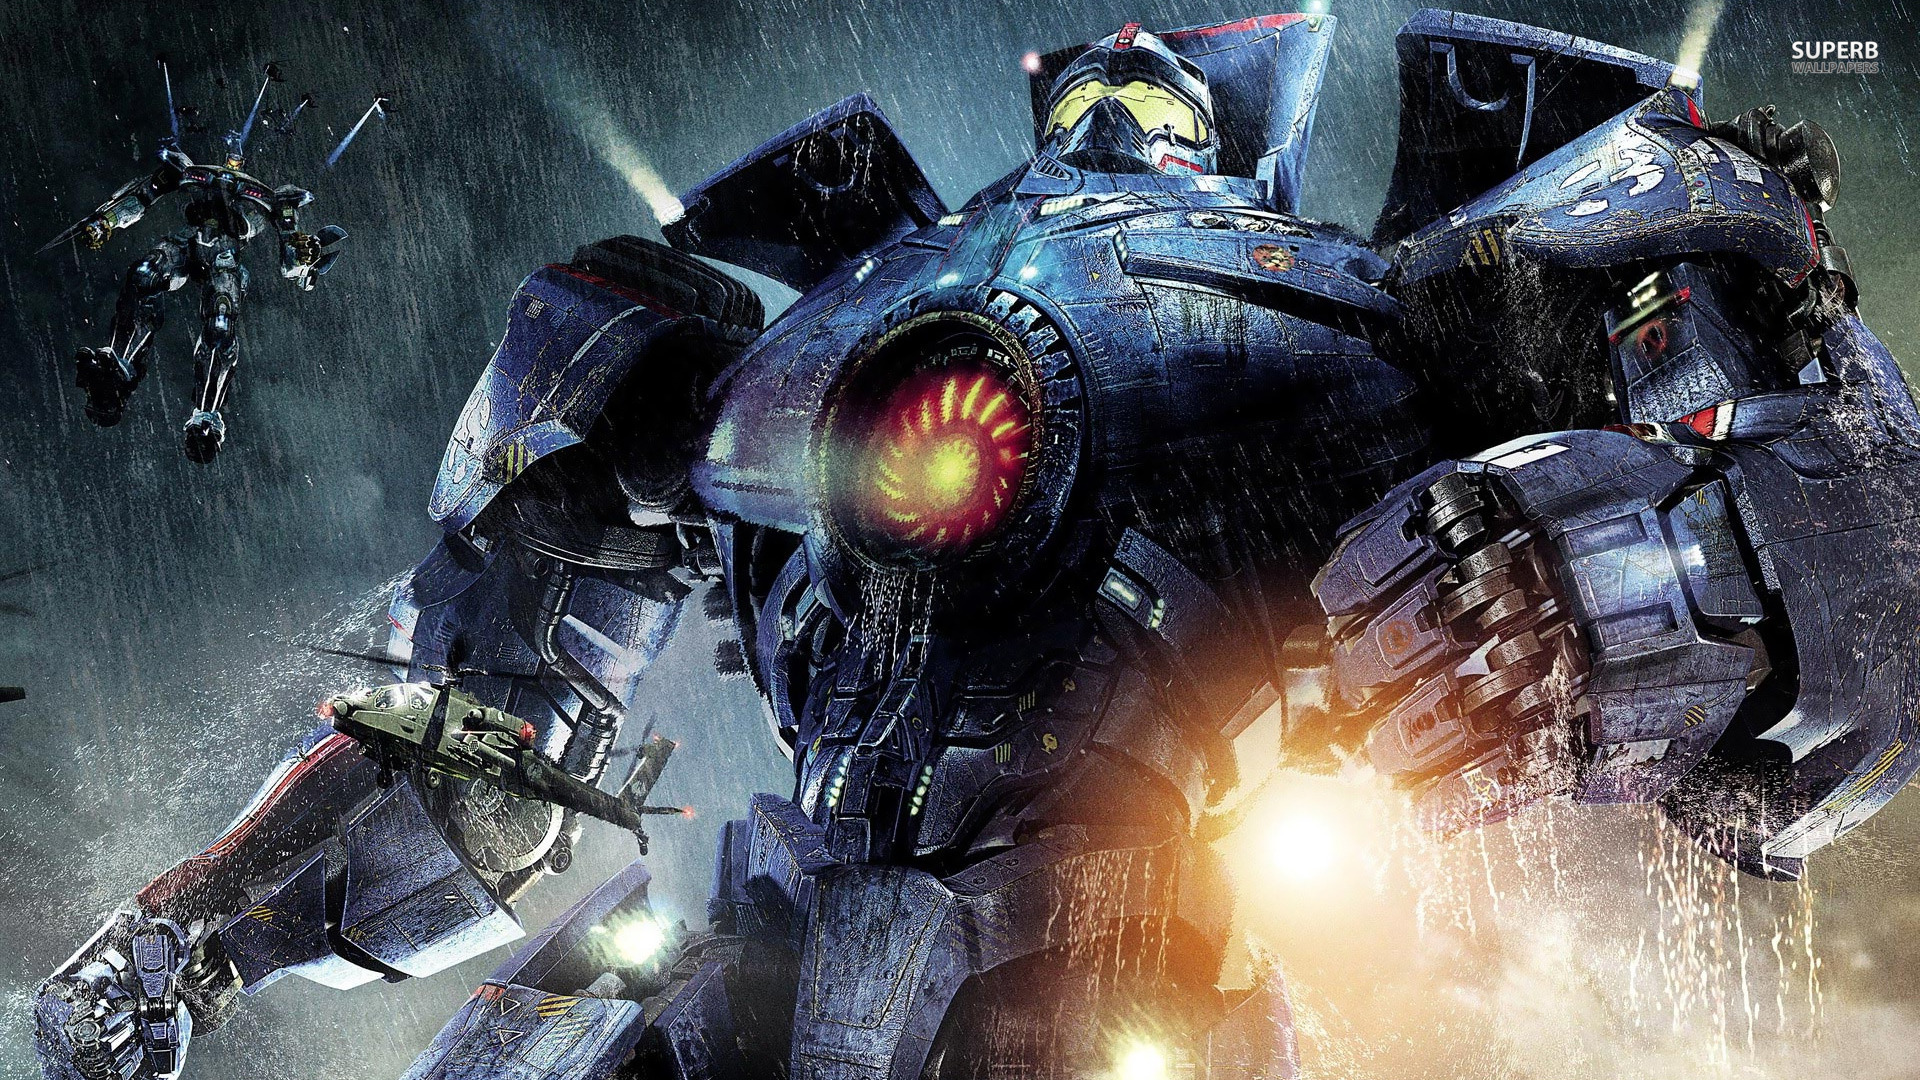 Pacific Rim wallpaper 1920x1080